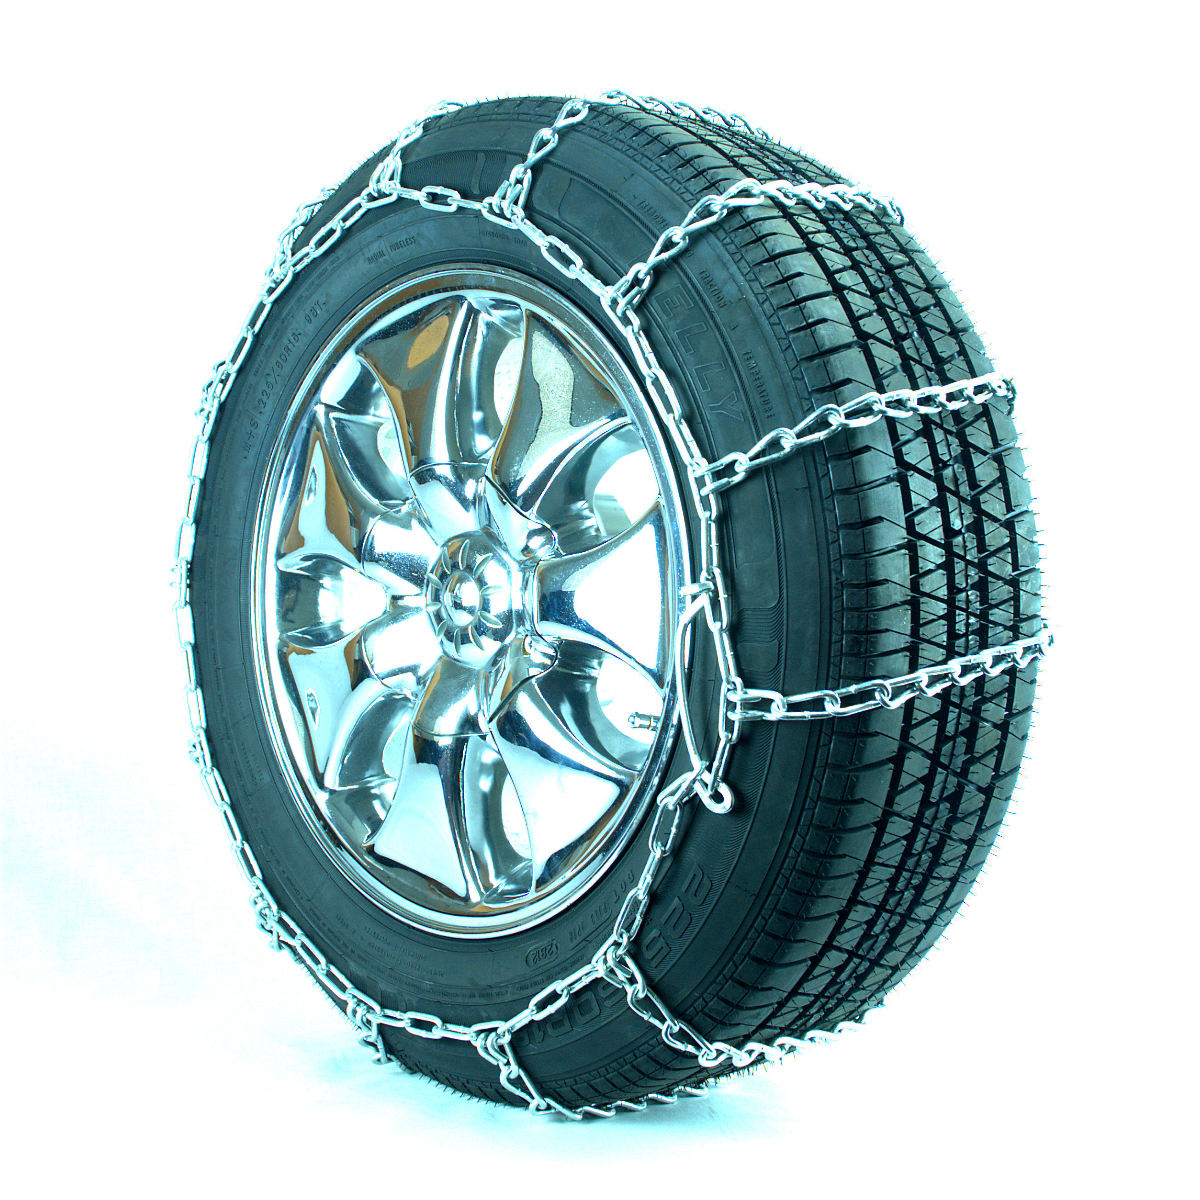 Titan Passenger Link Tire Chains Snow Or Ice Covered Road 5mm 24550